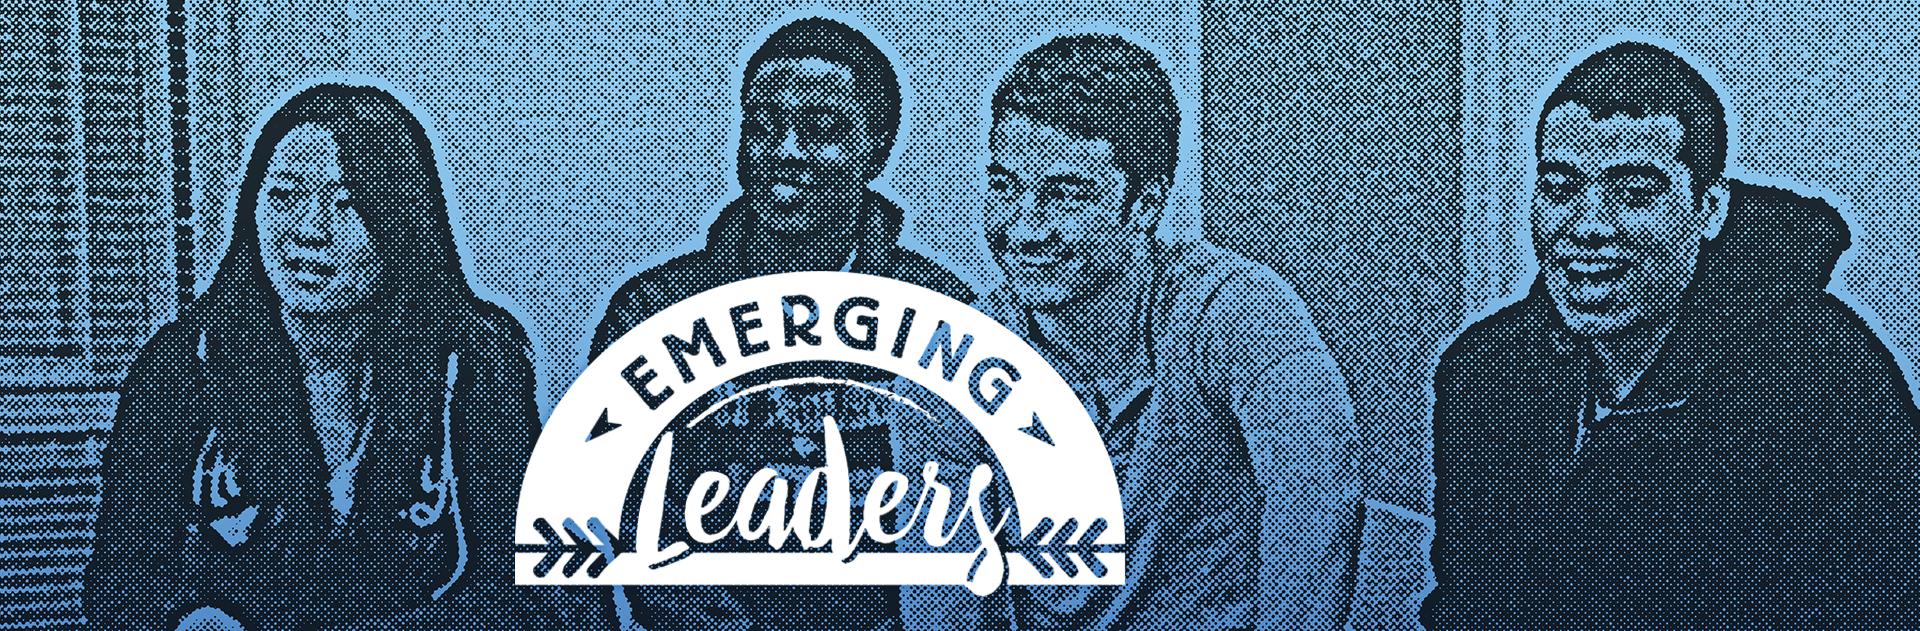 WEB_EmergingLeaders